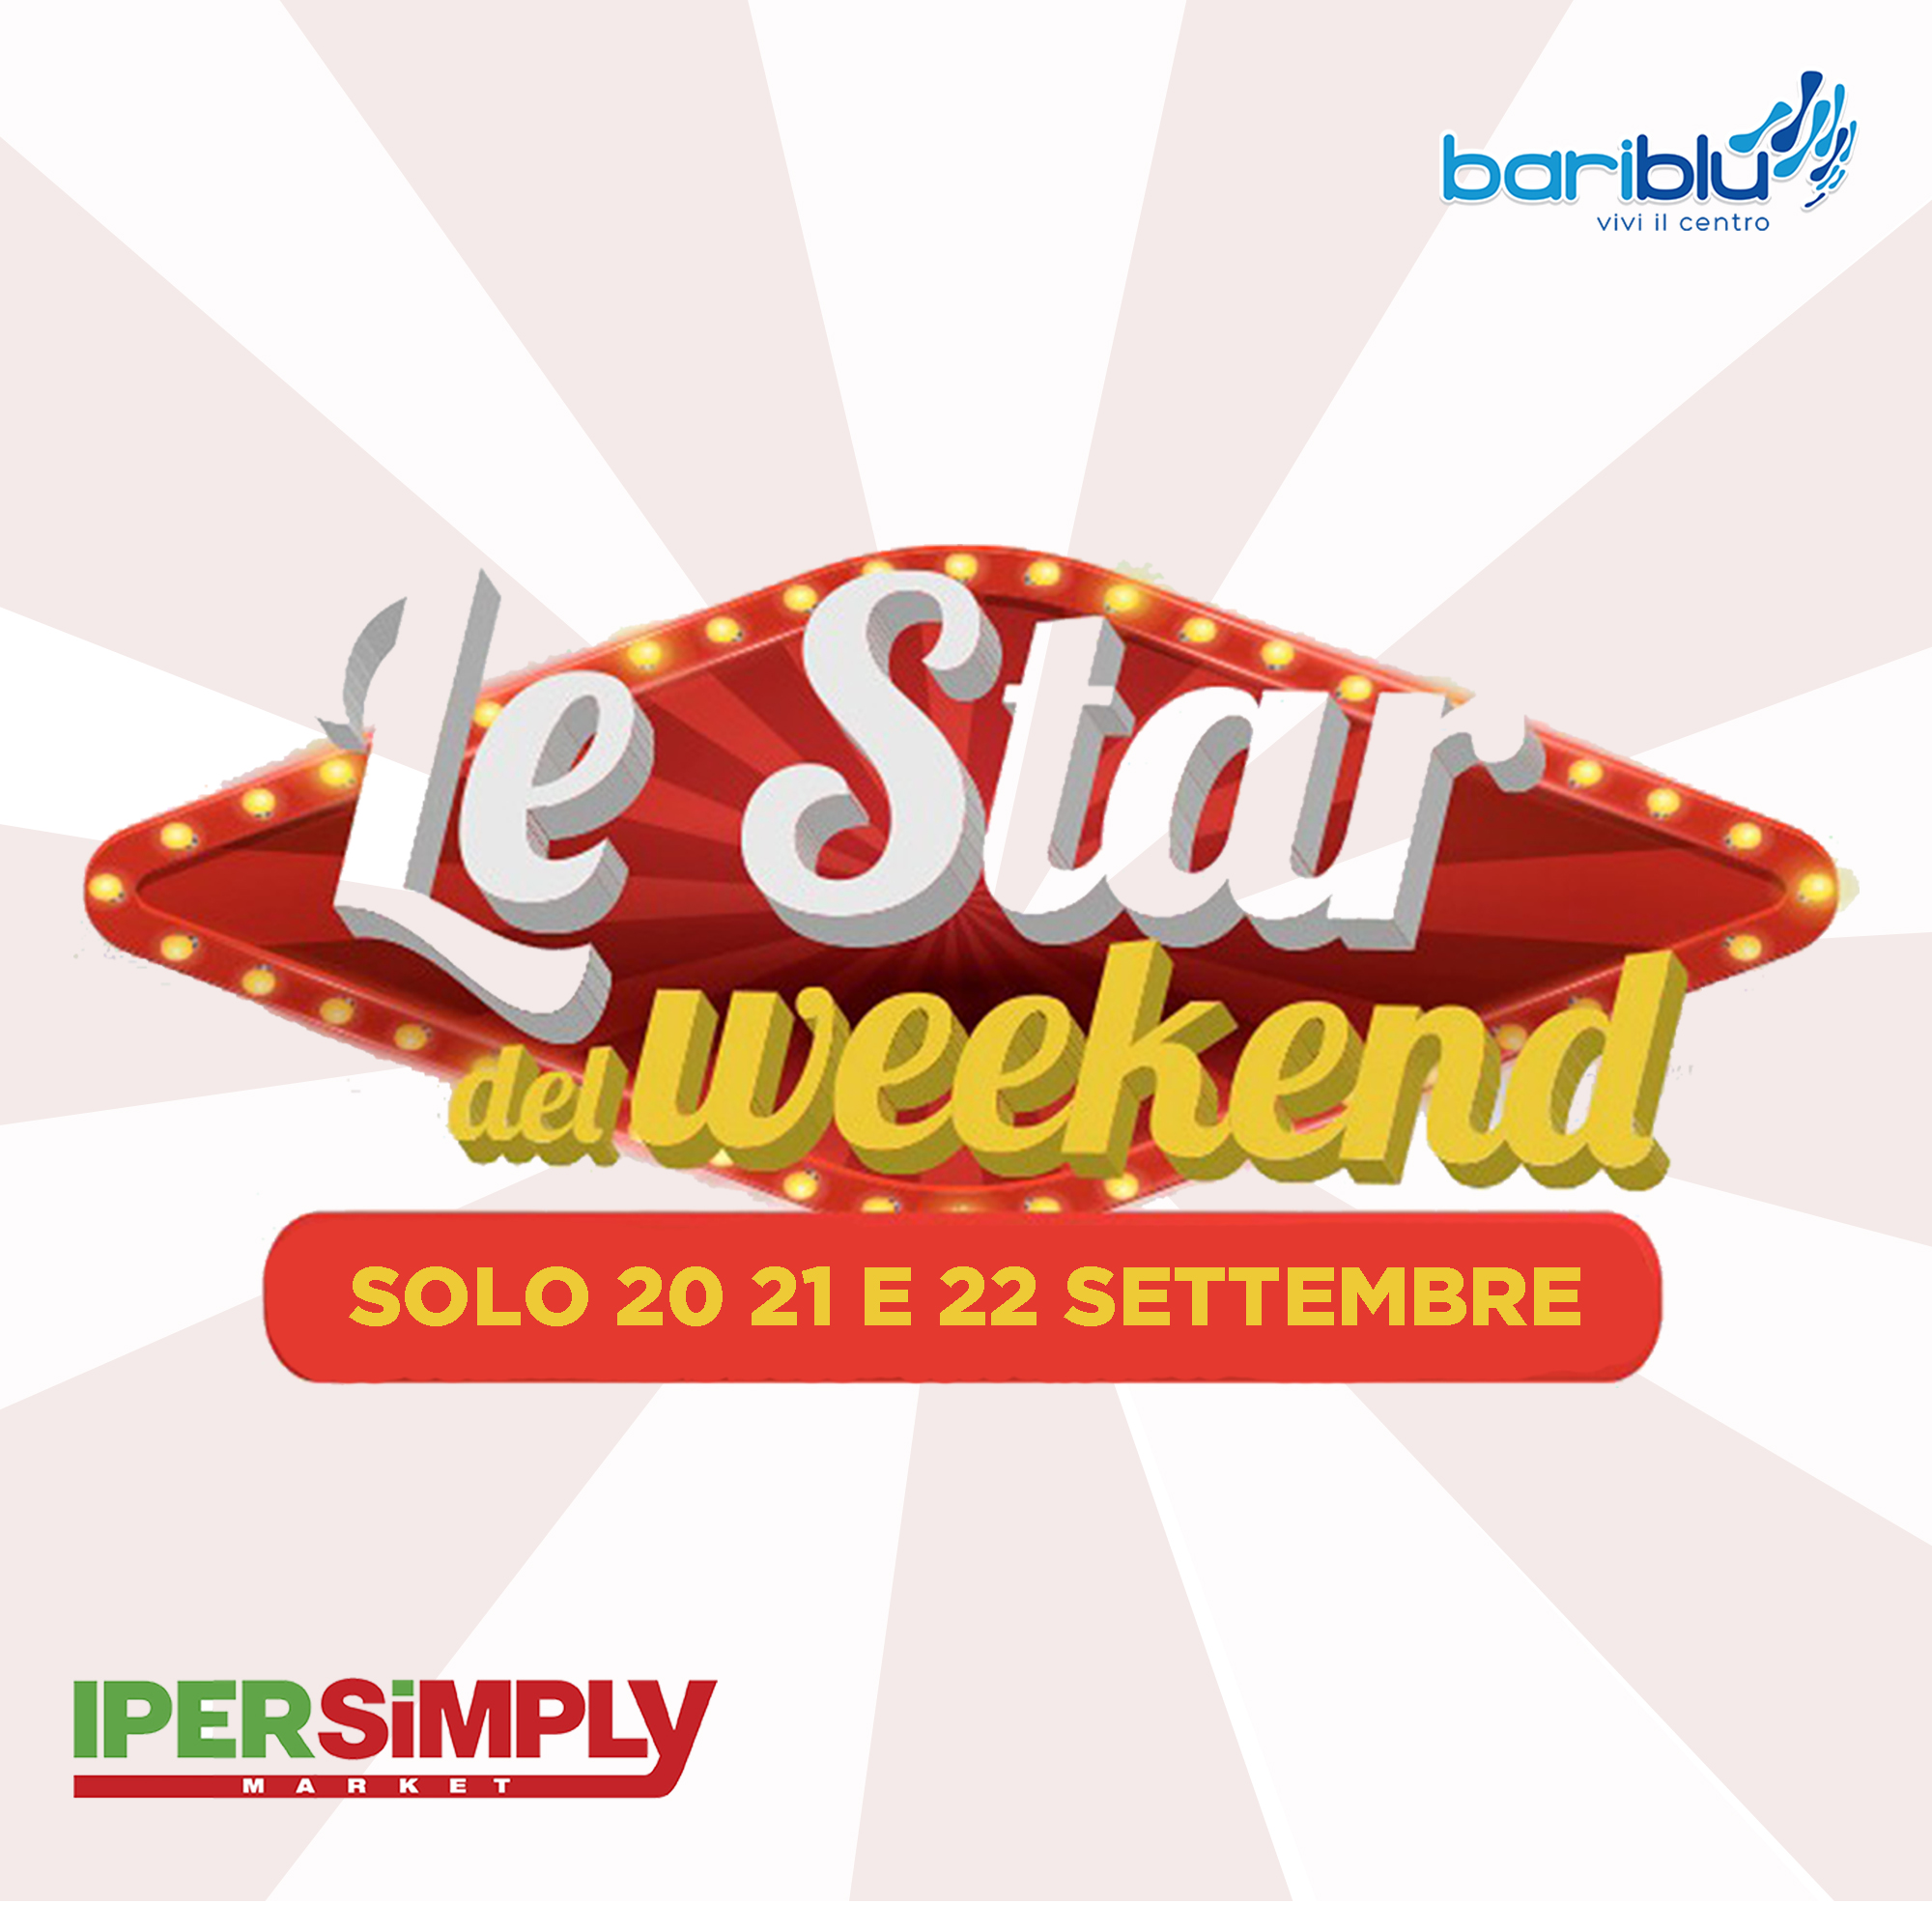 Ipersimply: le star del weekend